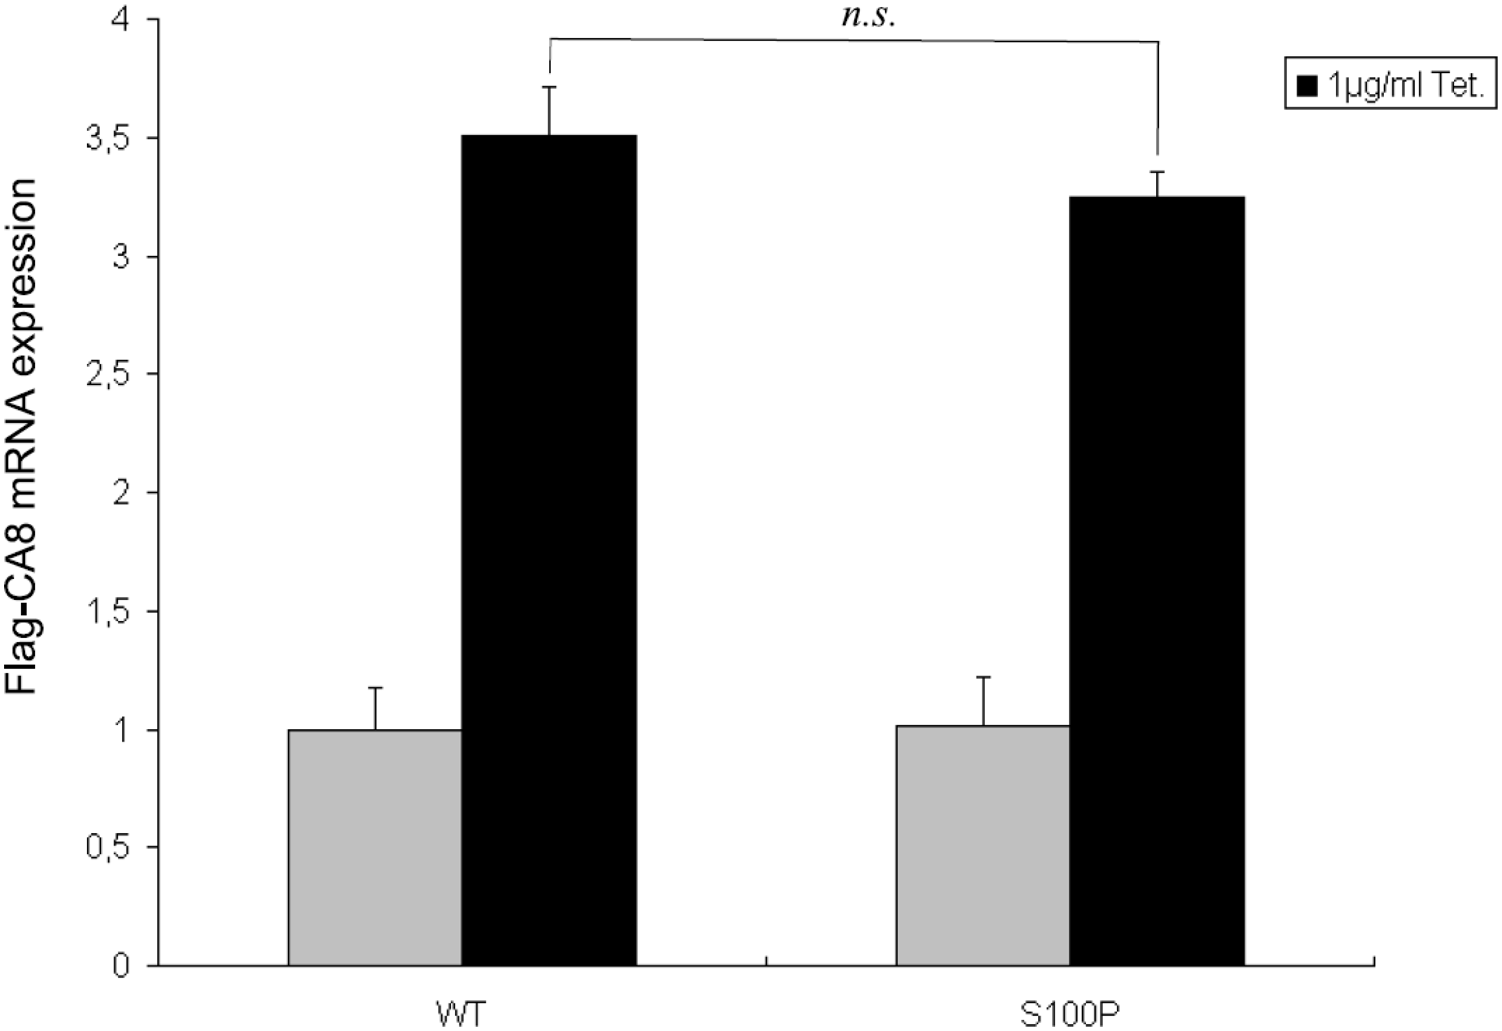 Relative expression levels of Flag-CA8 WT and S100P, tetracycline-inducible Flip-In T-REx-293 cells were grown in the absence or presence of 1 µg/ml tetracycline for 24 hours.